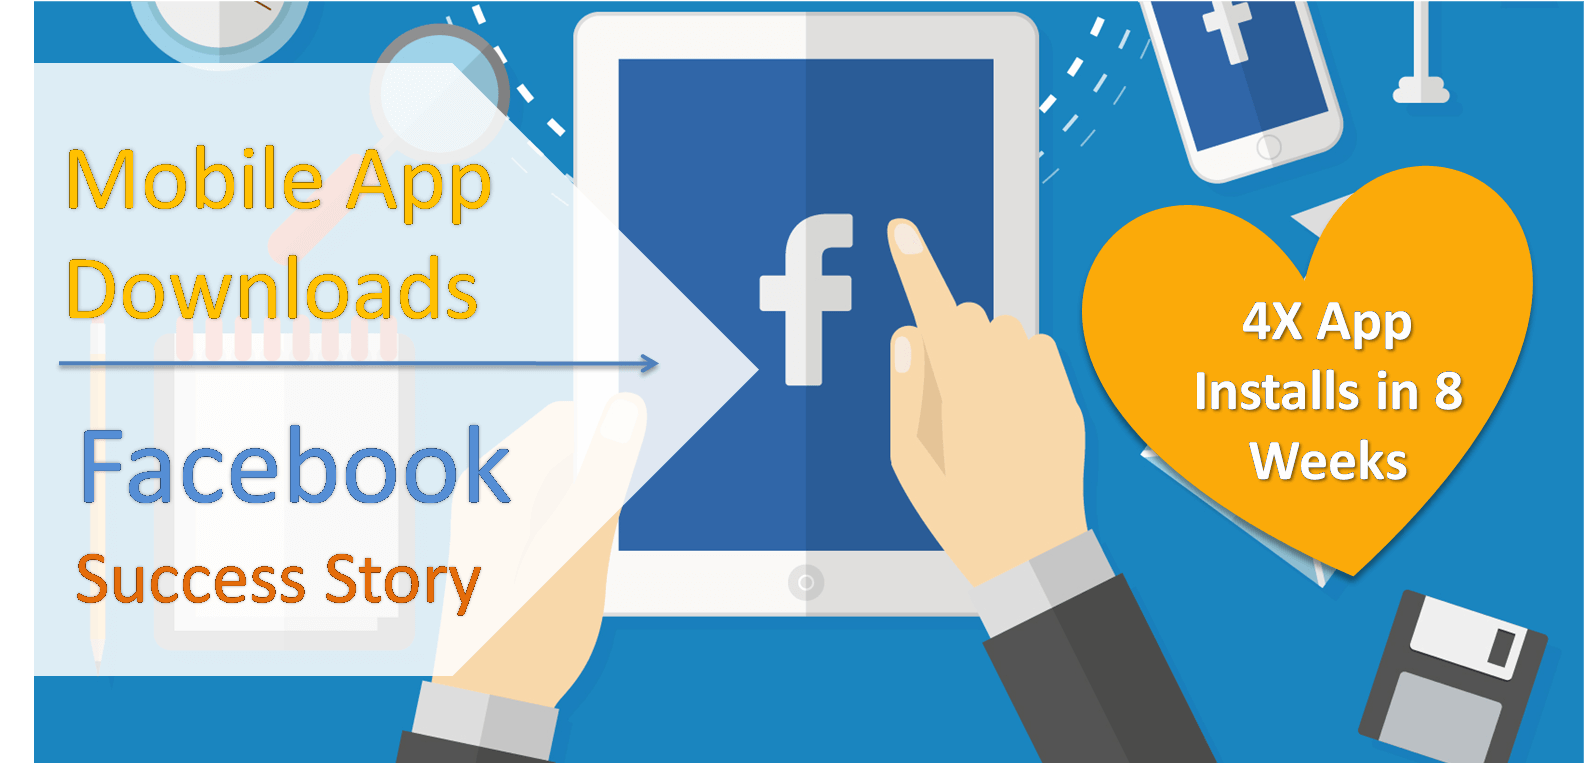 Mobile App Download Facebook Success Story : Top Health App